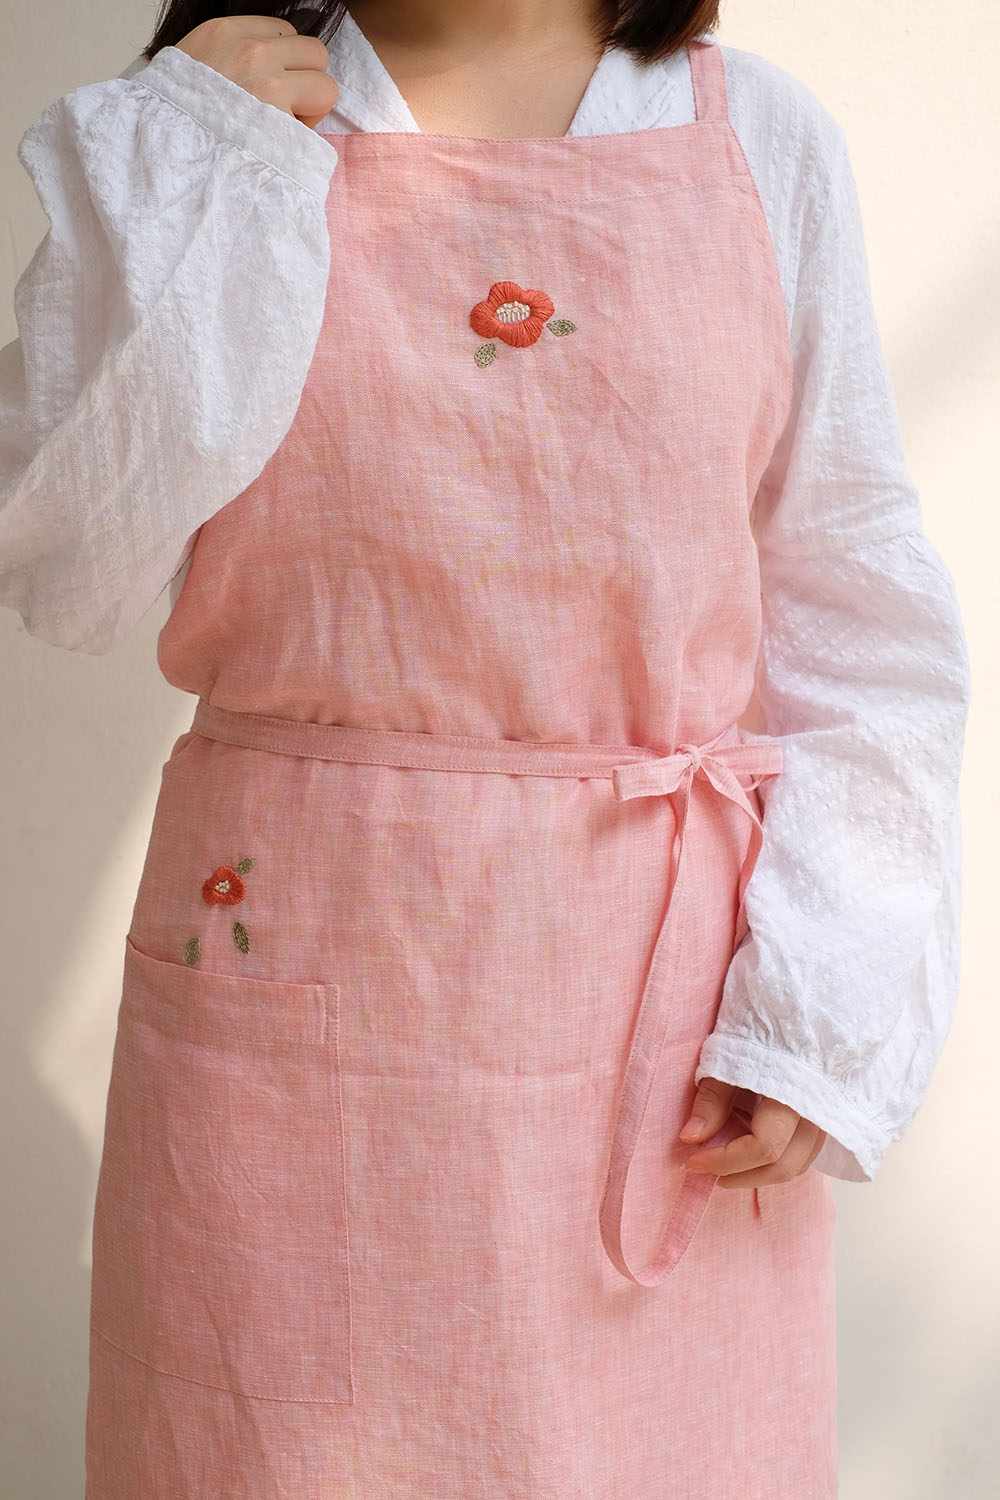 $23.5   Material: Linen / Colour: Pastel coral pink  Hand wash for best result